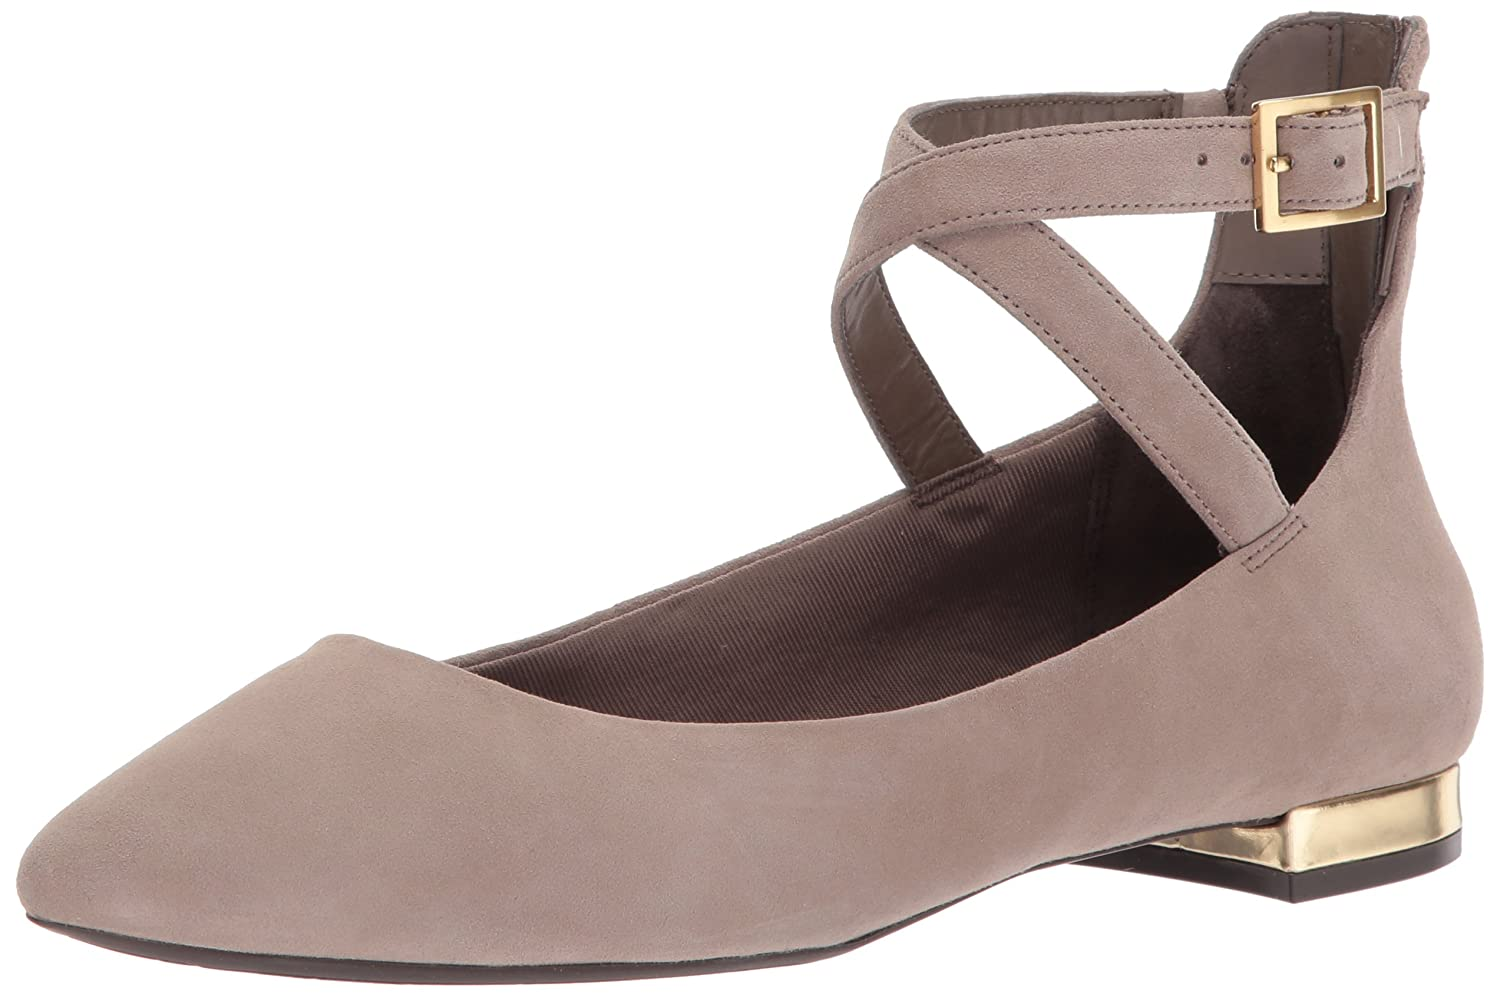 Rockport Women's Total Motion Adelyn Anklestrap Ballet Flat B01N4SMDEX 6.5 B(M) US|Pebble Suede